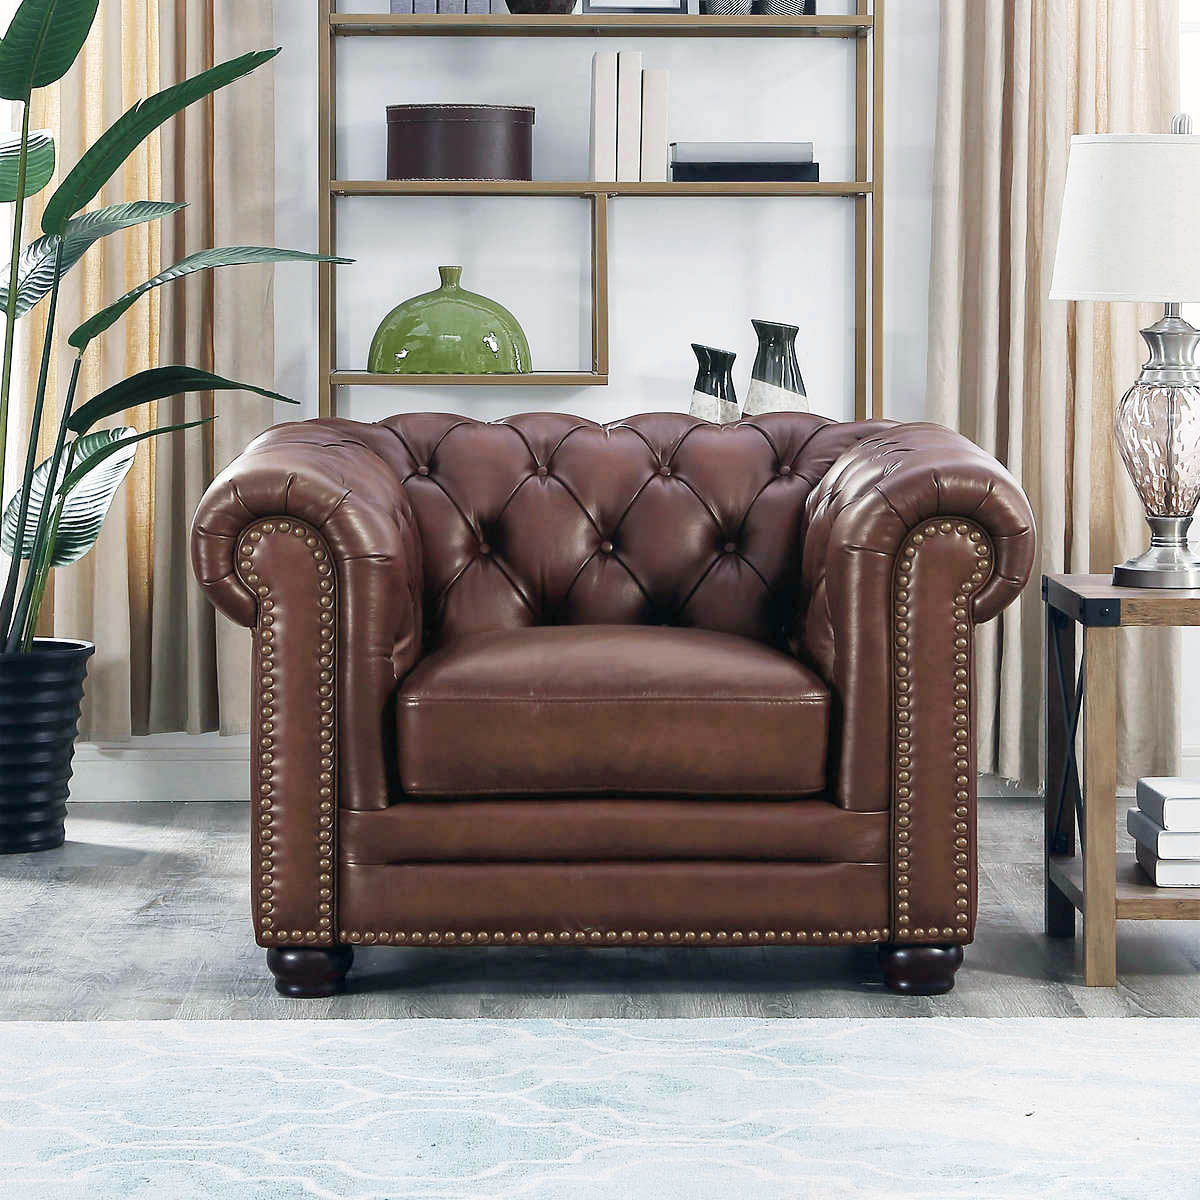 Magnificent Details About New Chesterfield Lounge Chair Top Grain Walnut Brown Leather English Rh Style Machost Co Dining Chair Design Ideas Machostcouk